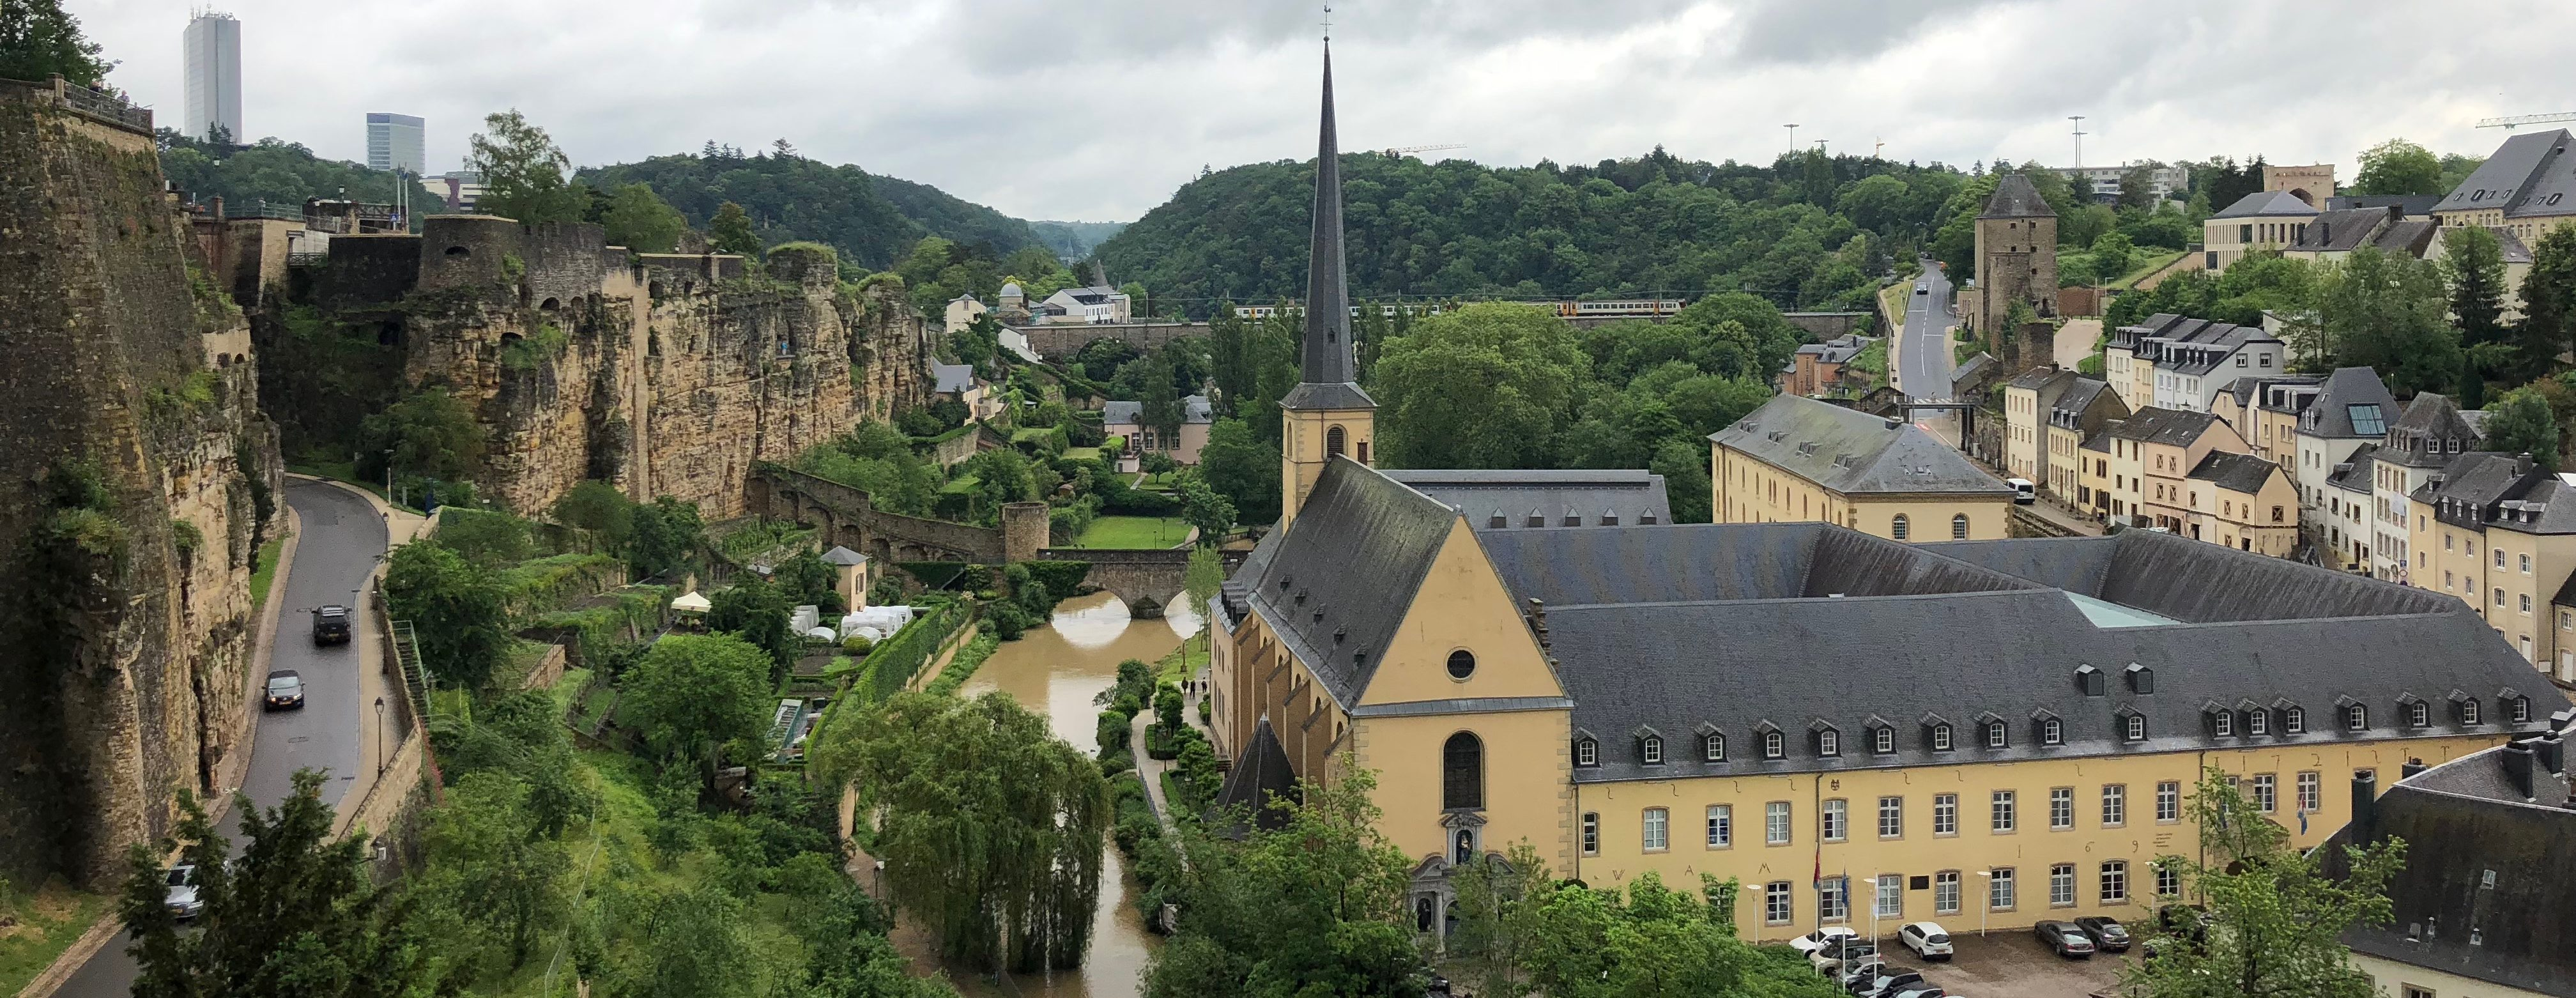 Luxembourg City - The Traveling Storygirl